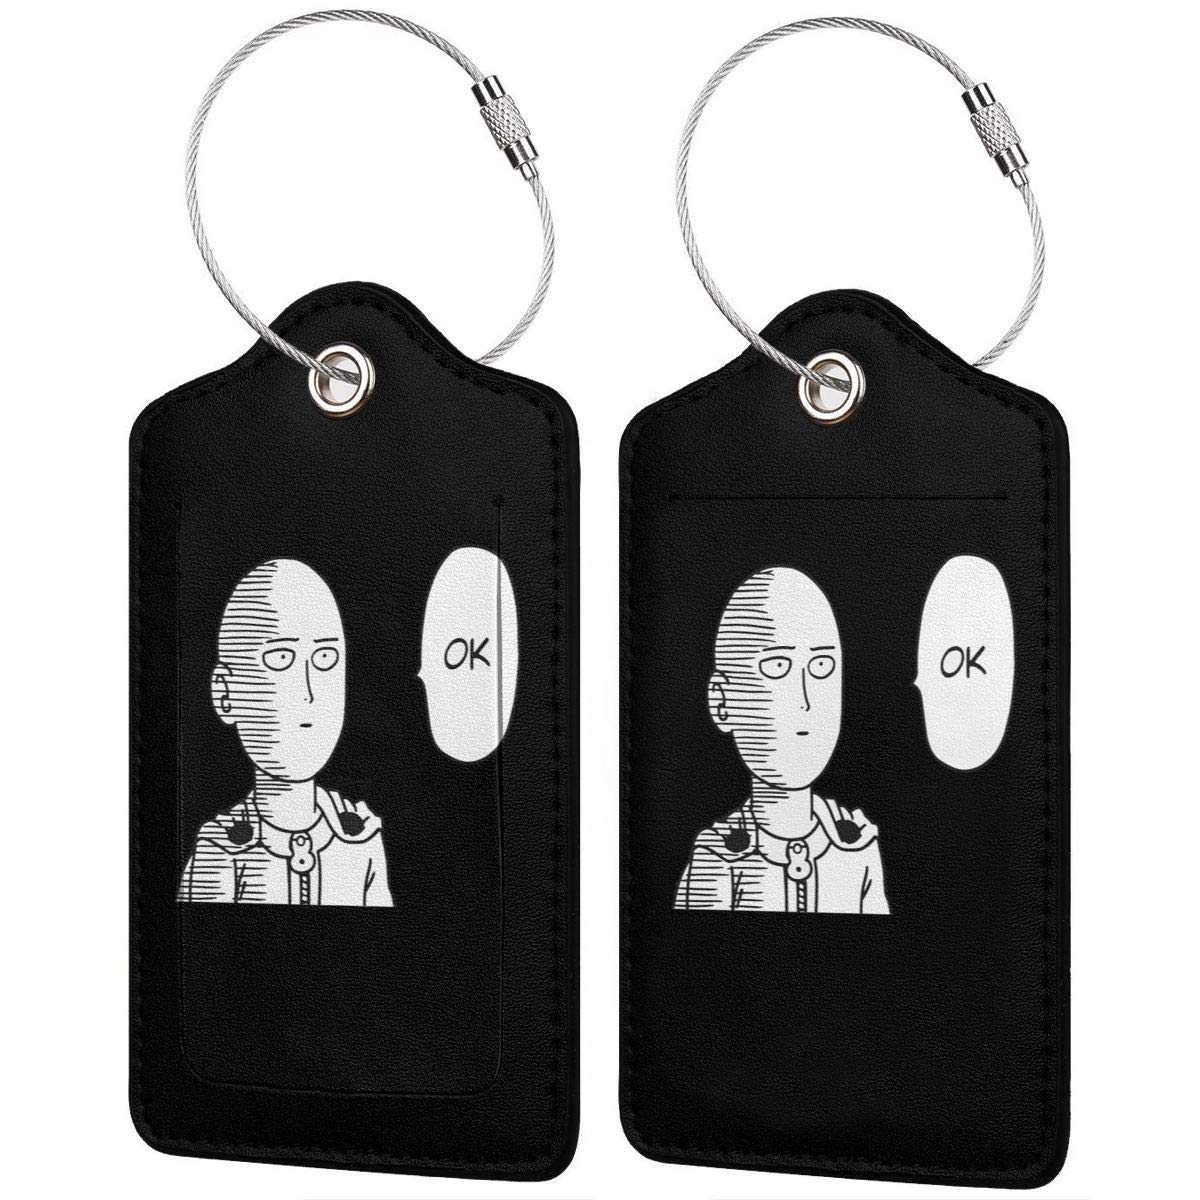 One Punch Man Saitama OK Leather Luggage Tag Travel ID Label For Baggage Suitcase